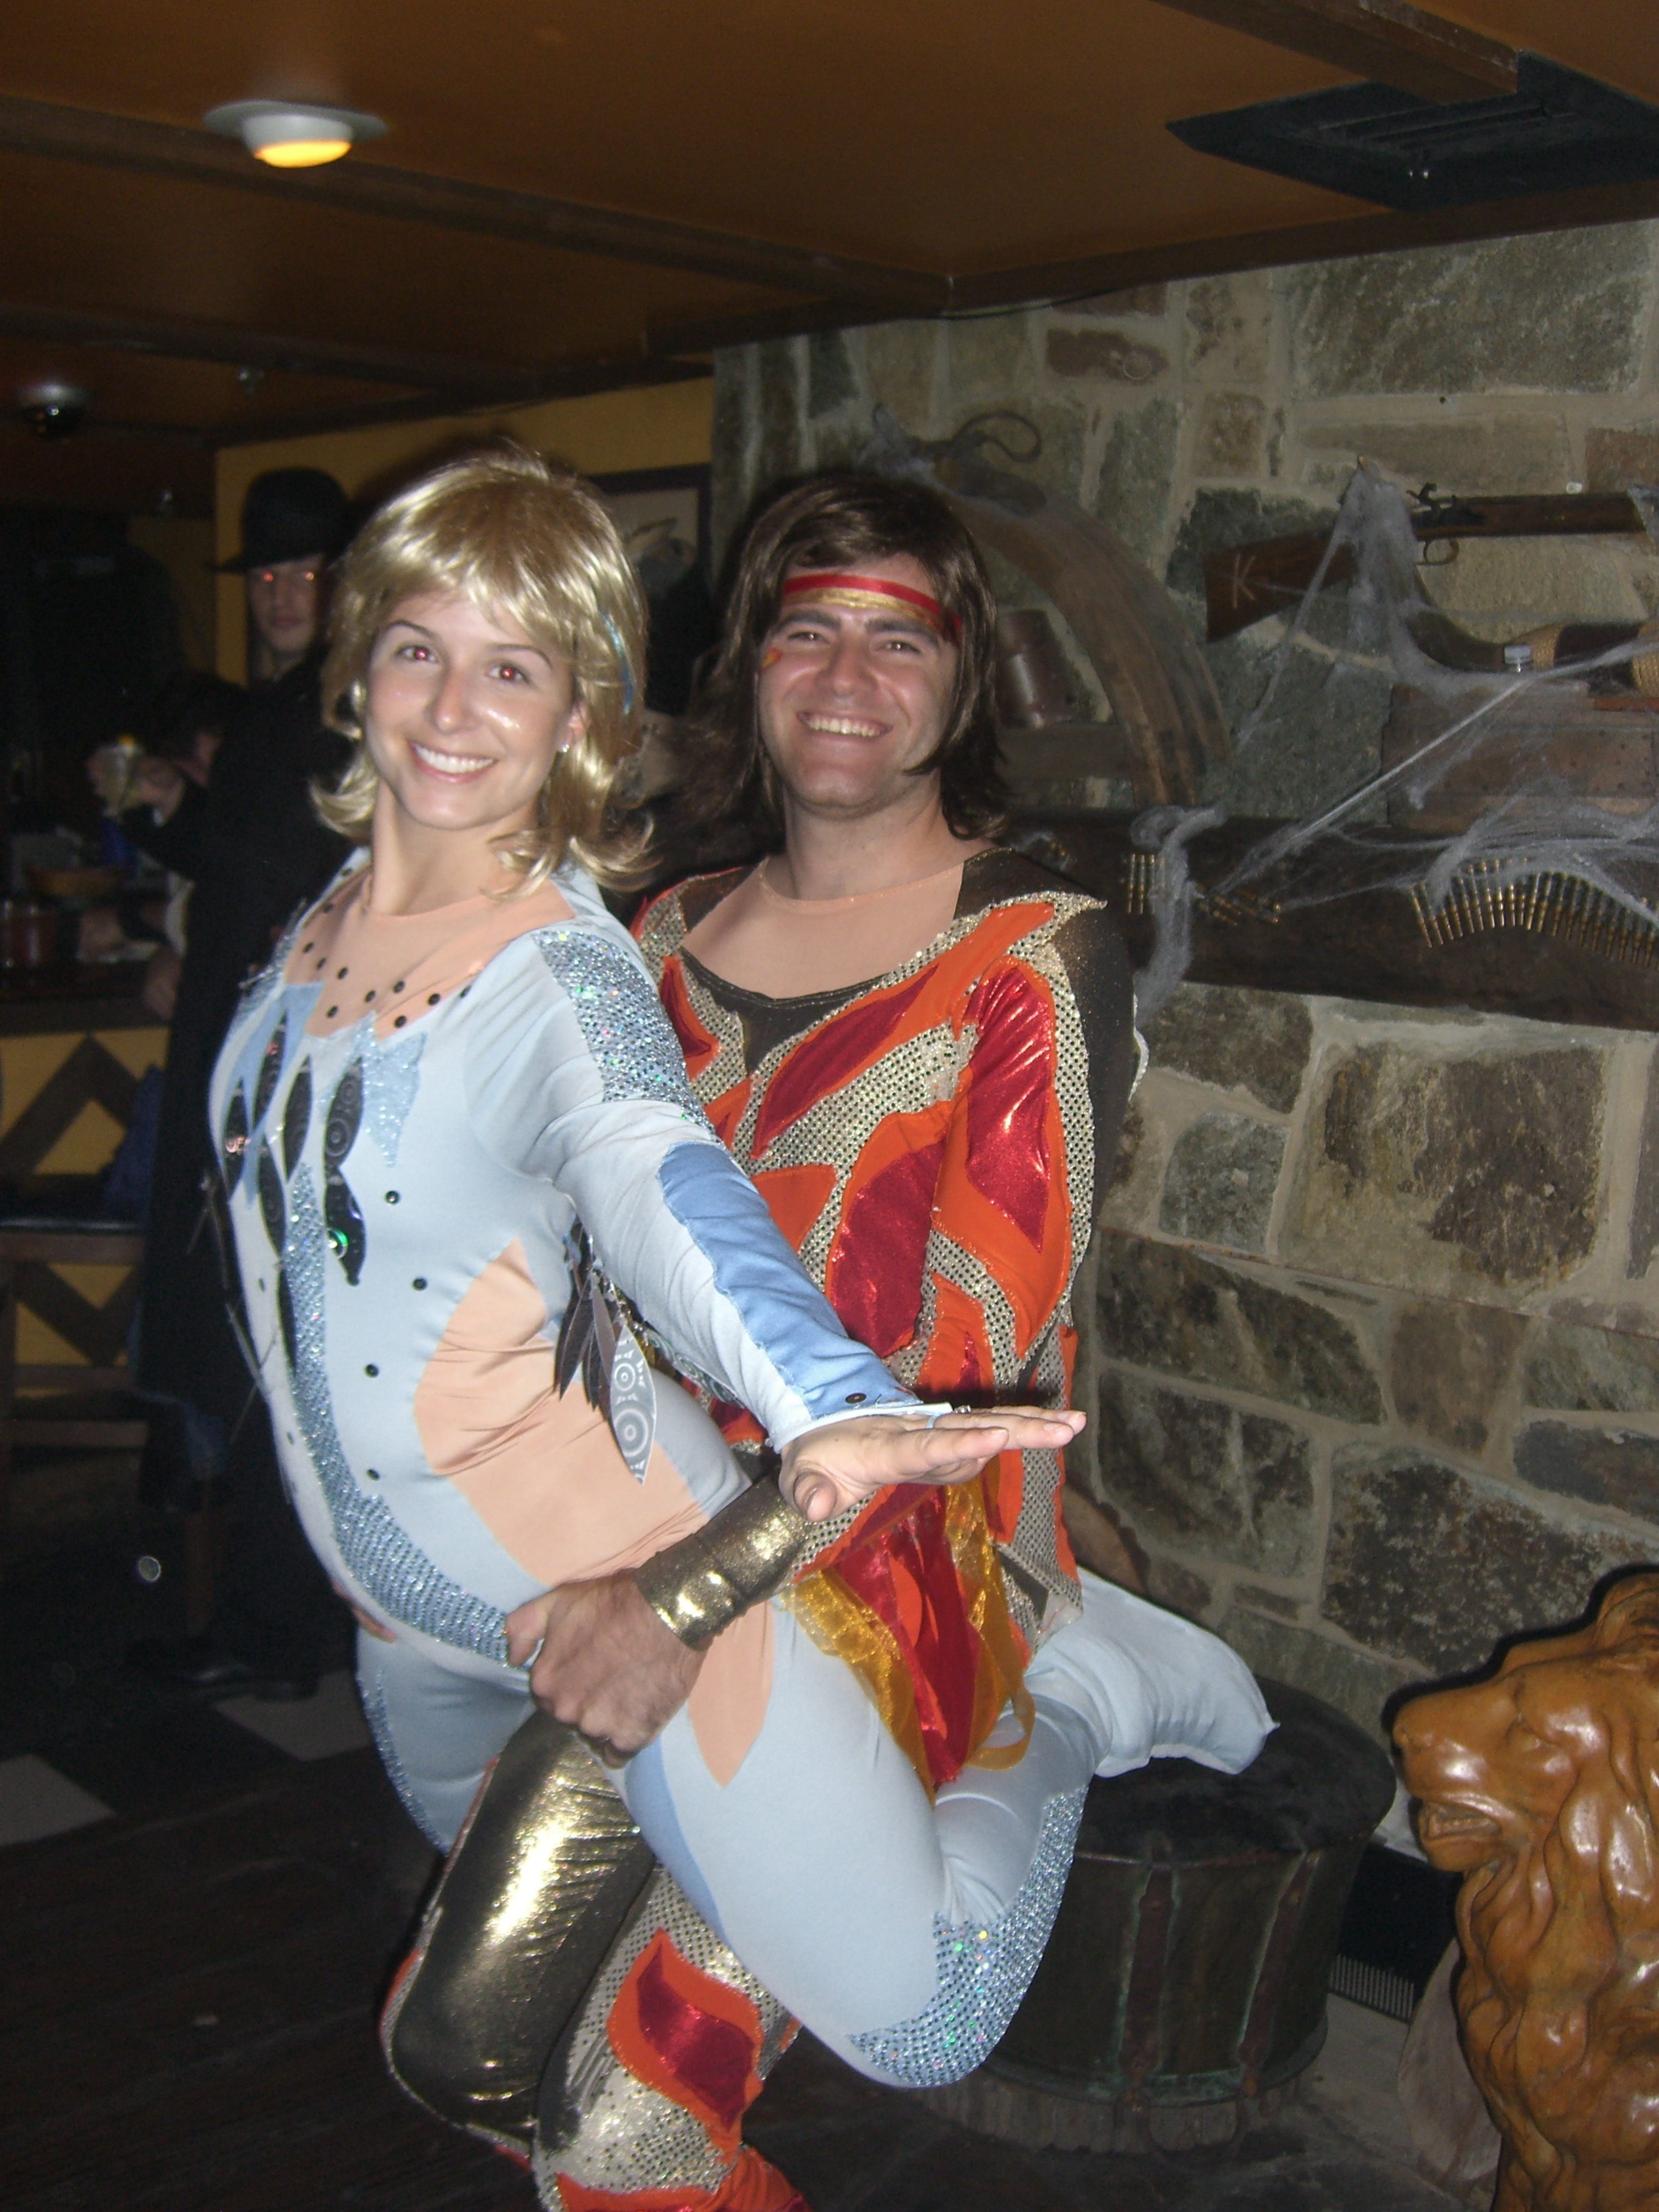 blades of glory costumes - photo #21